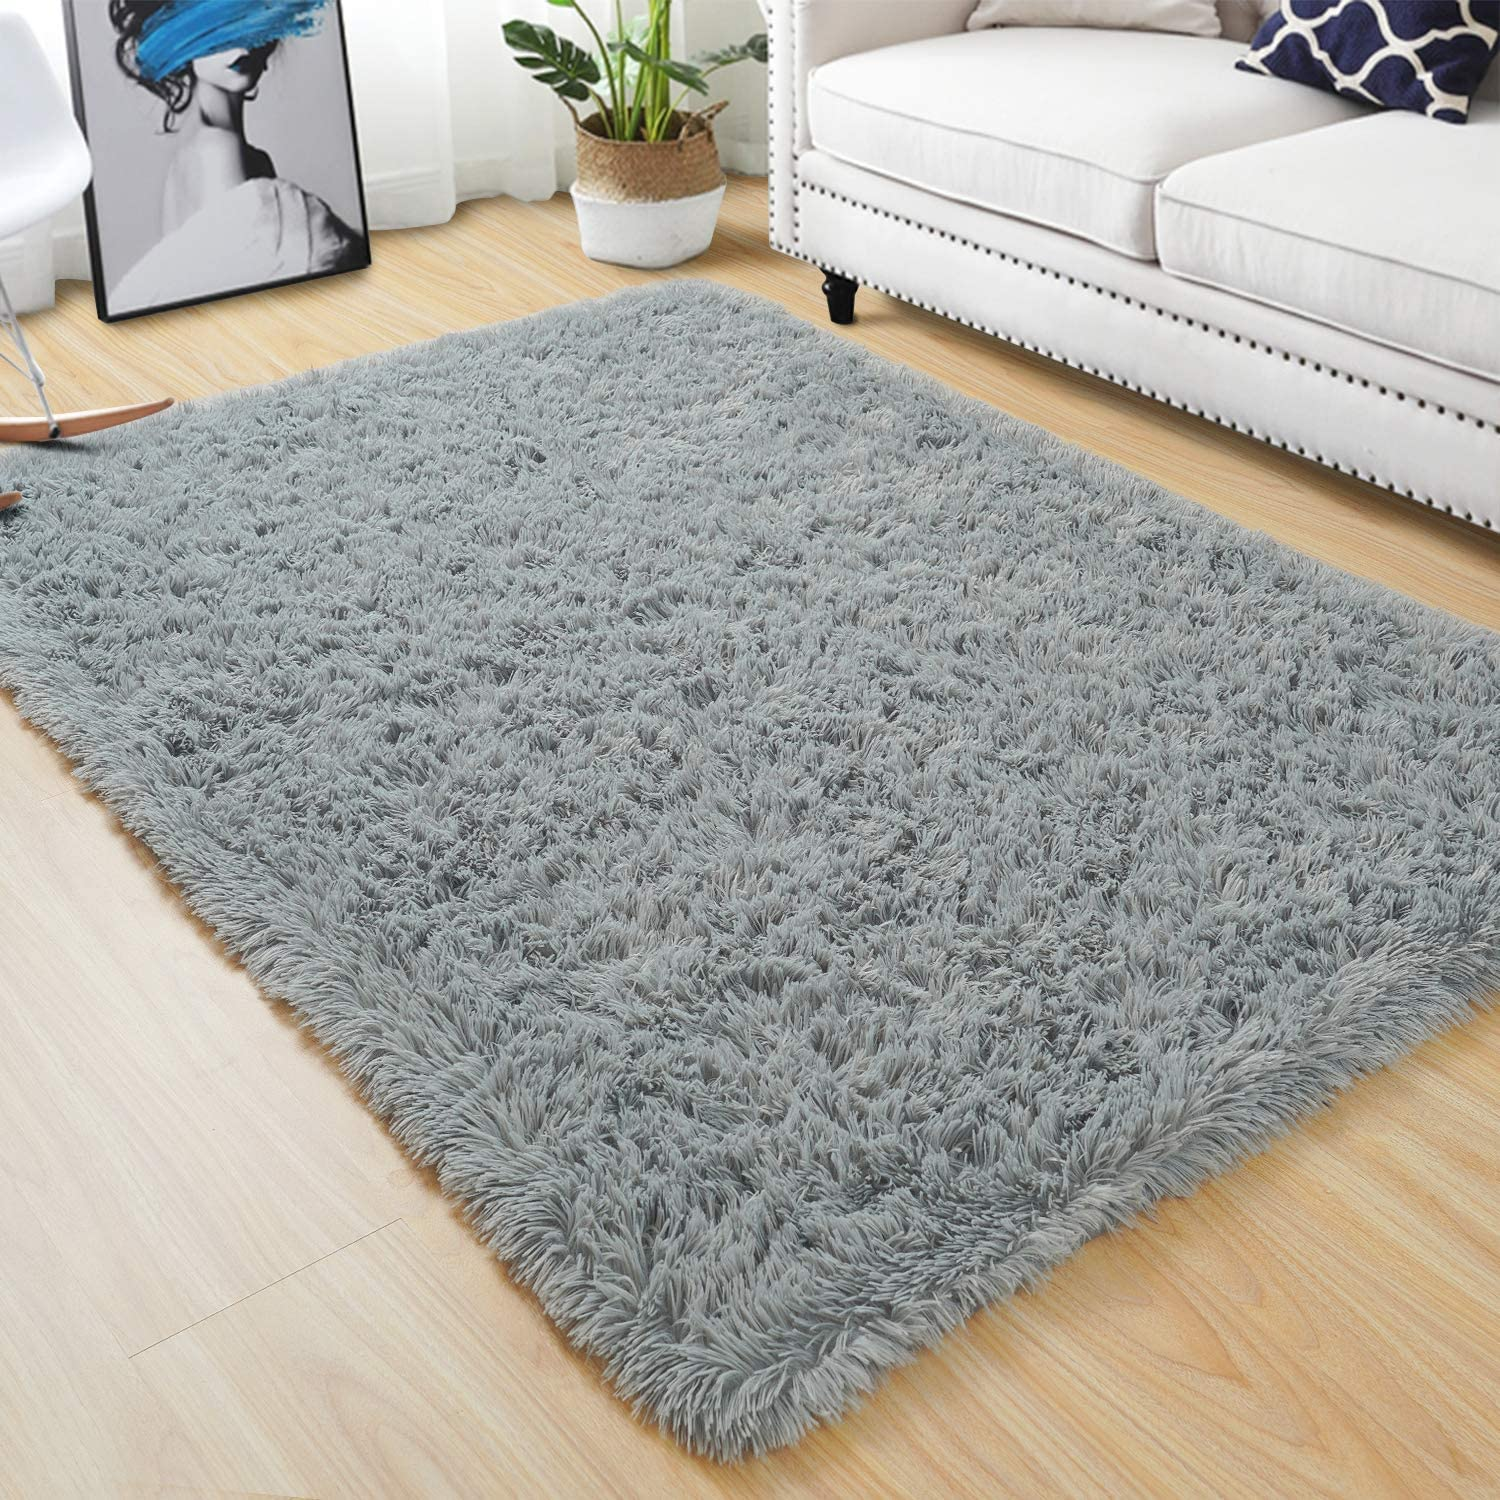 Quenlife Fluffy Bedroom Rug Plush and Soft Nursery Rugs Shaggy Carpet for Kids Grils Room Furry Children Home Decoration Shag Floor Rugs with Anti-Slip Bottom, 4 x 6ft, Grey